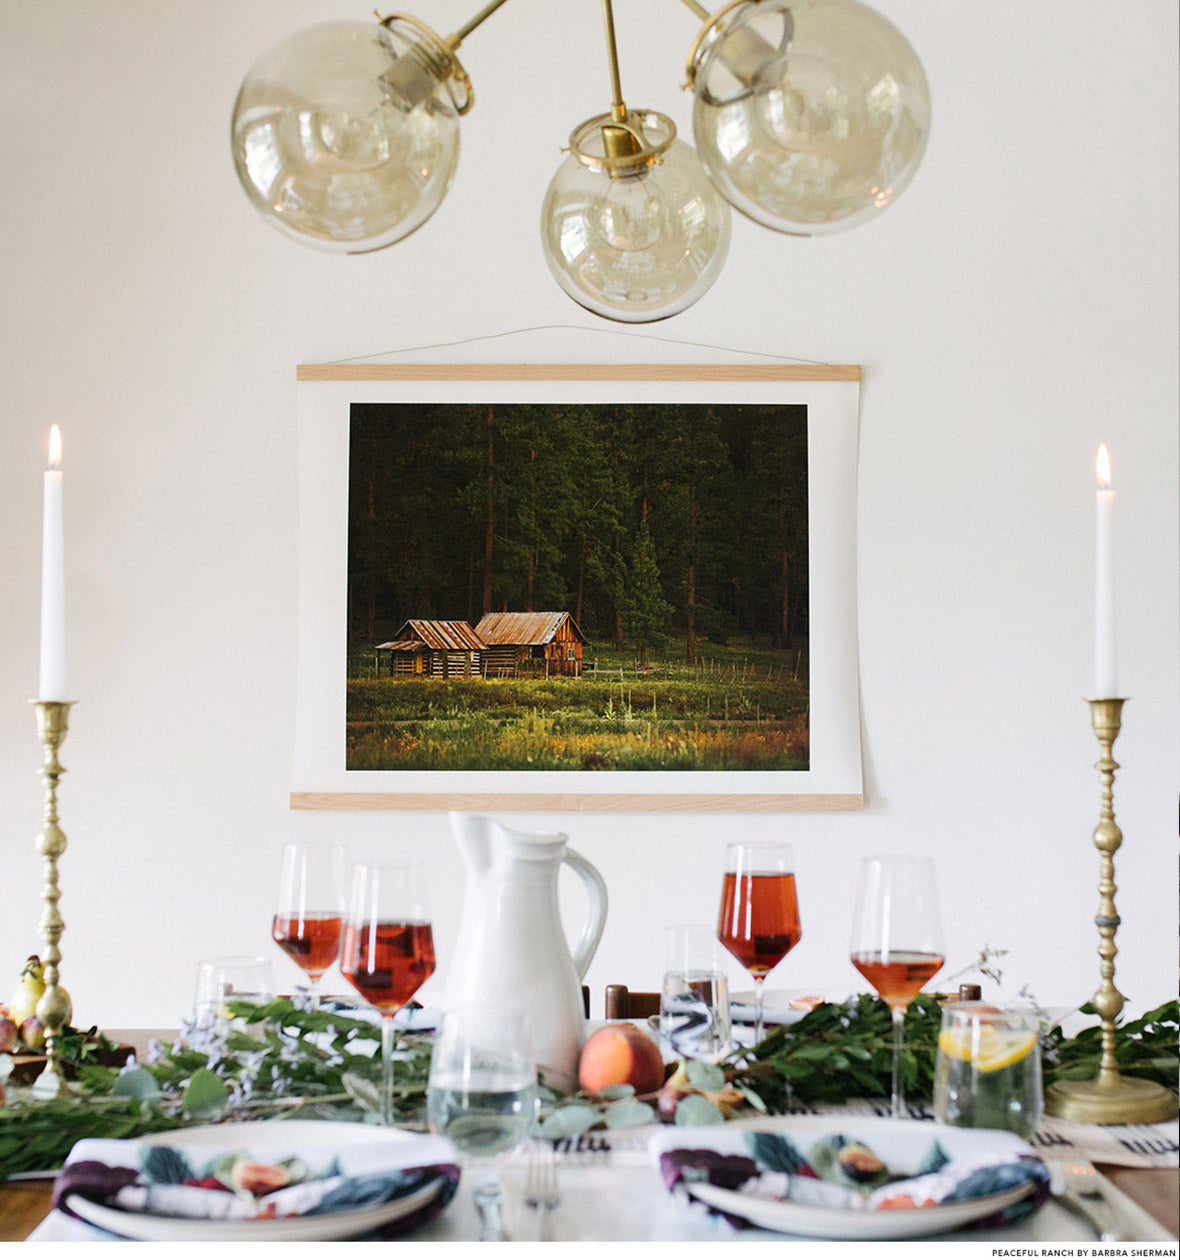 Shop European Farmhouse Home Decor